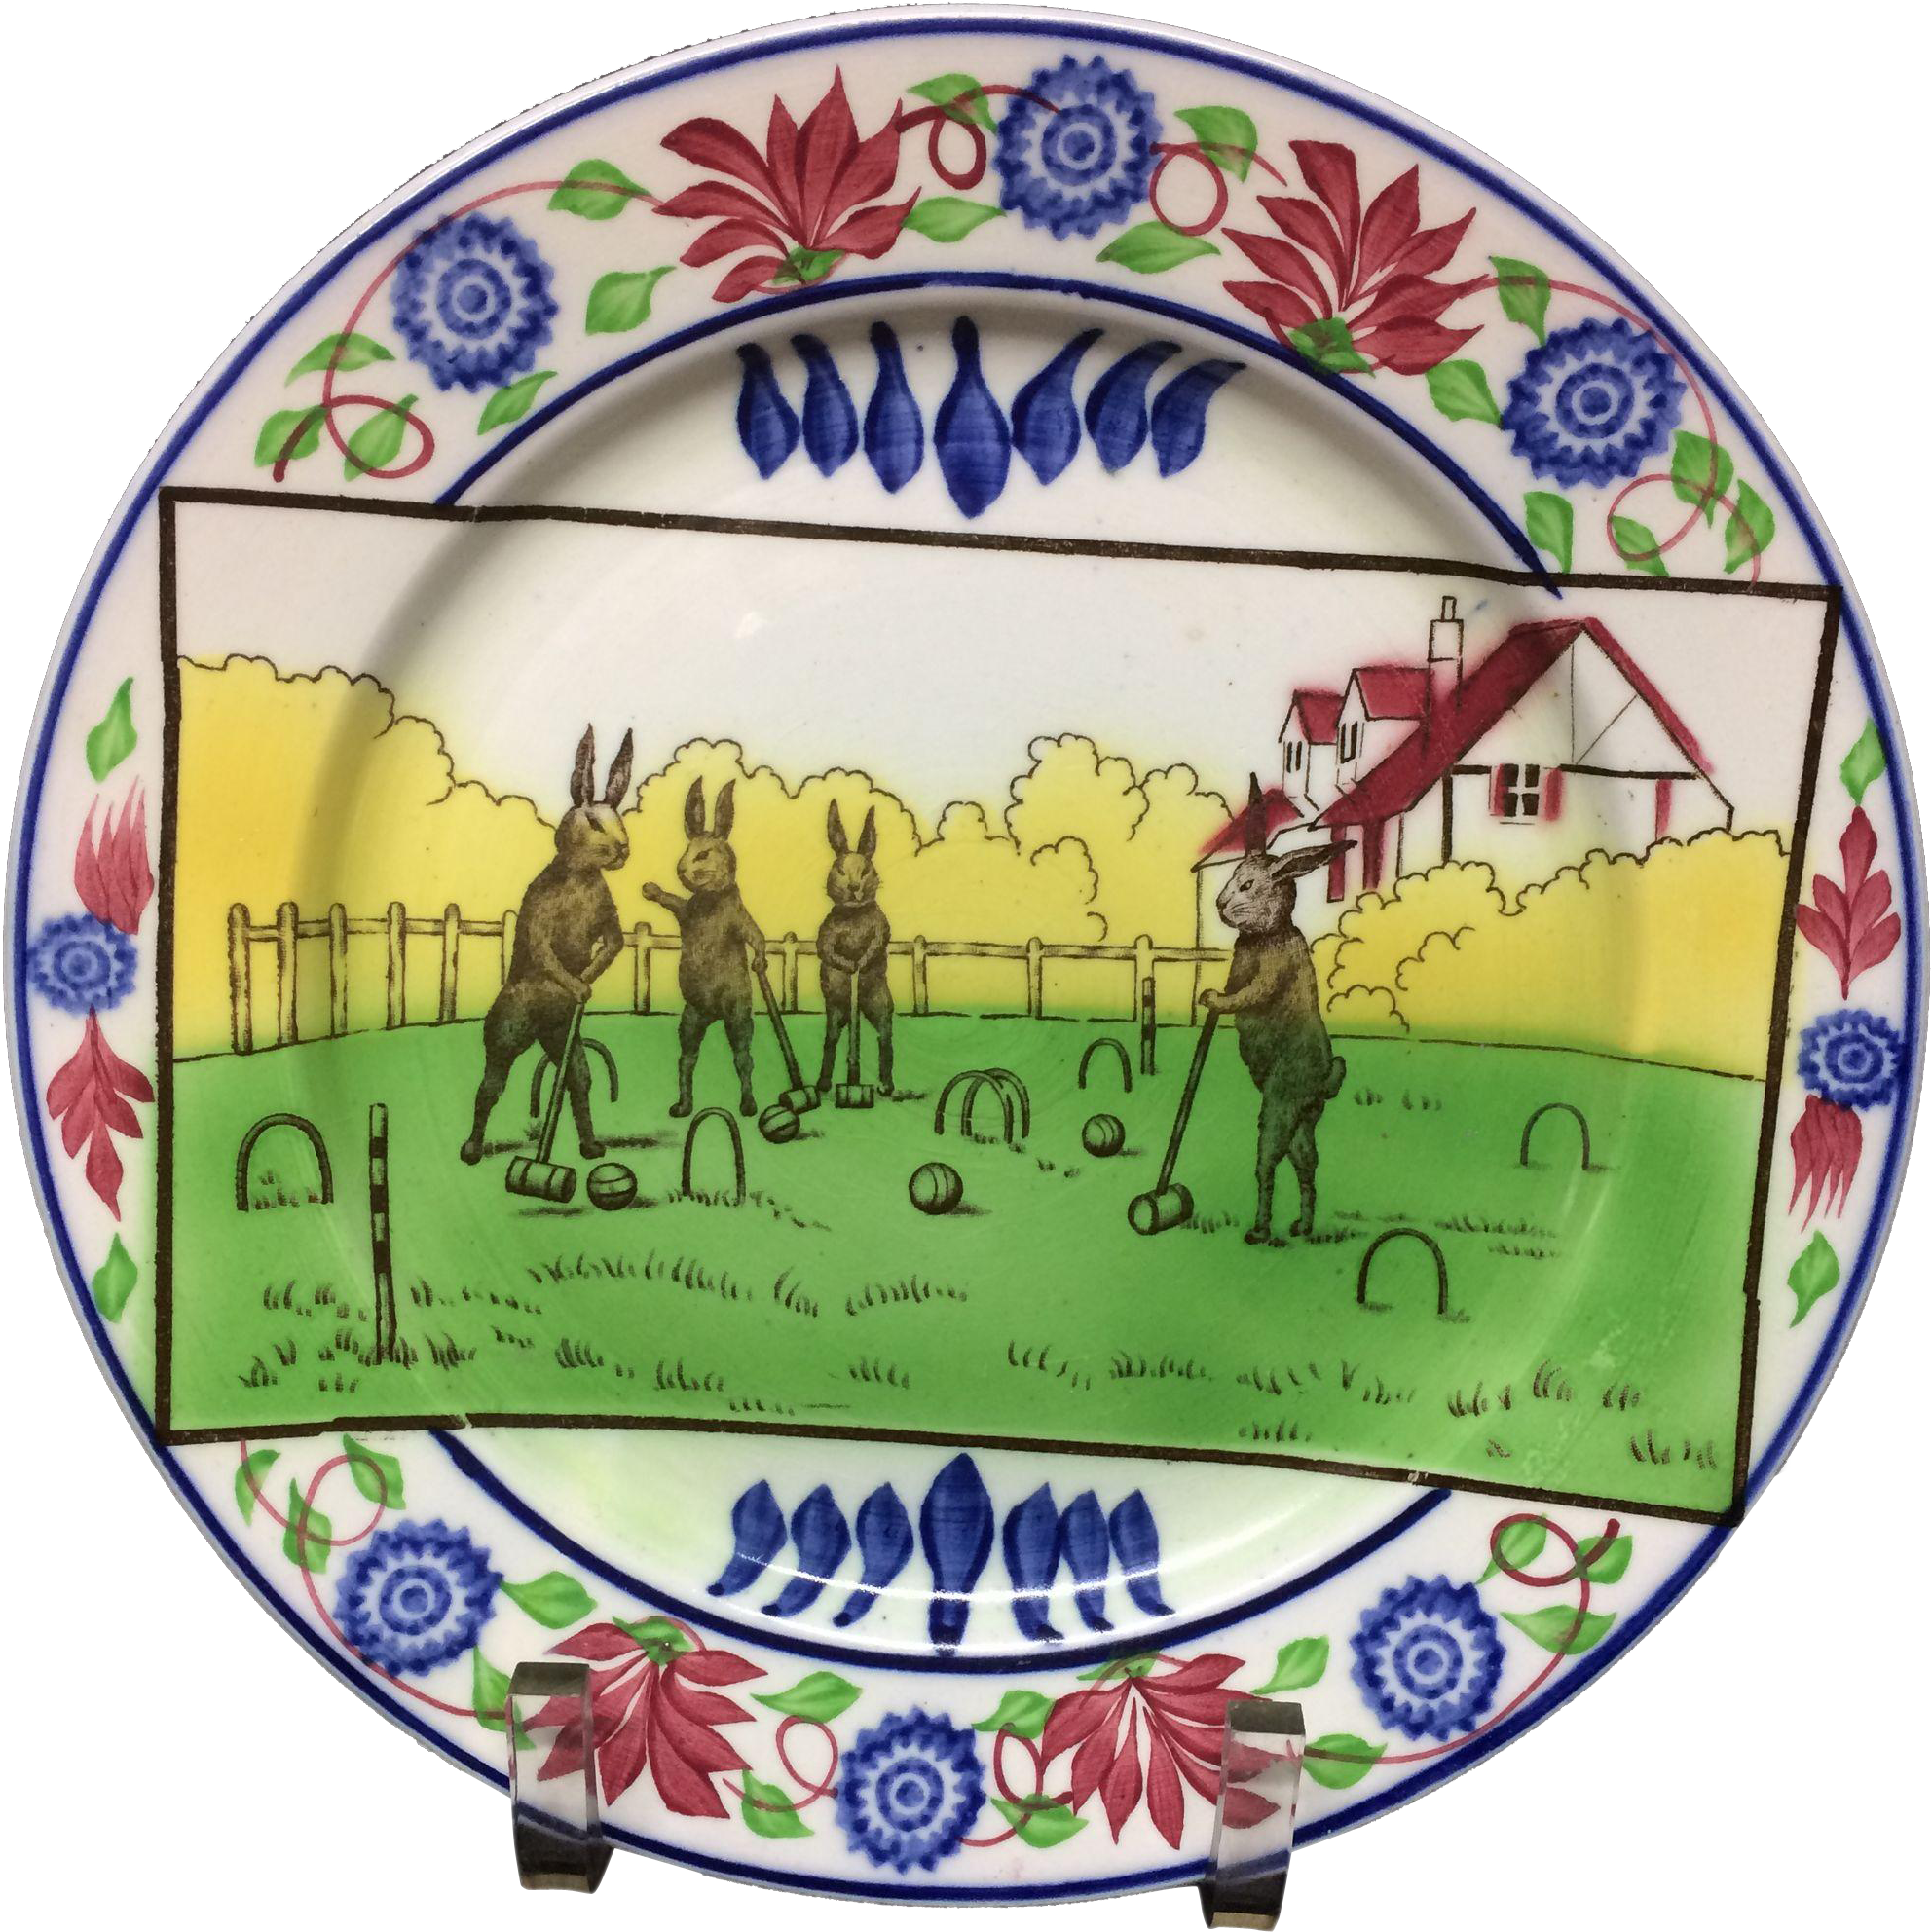 c 1900 ~ Stick Spatter Rabbitware Sporting Series Plate ~ CROQUET Anthropomorphized Rabbit